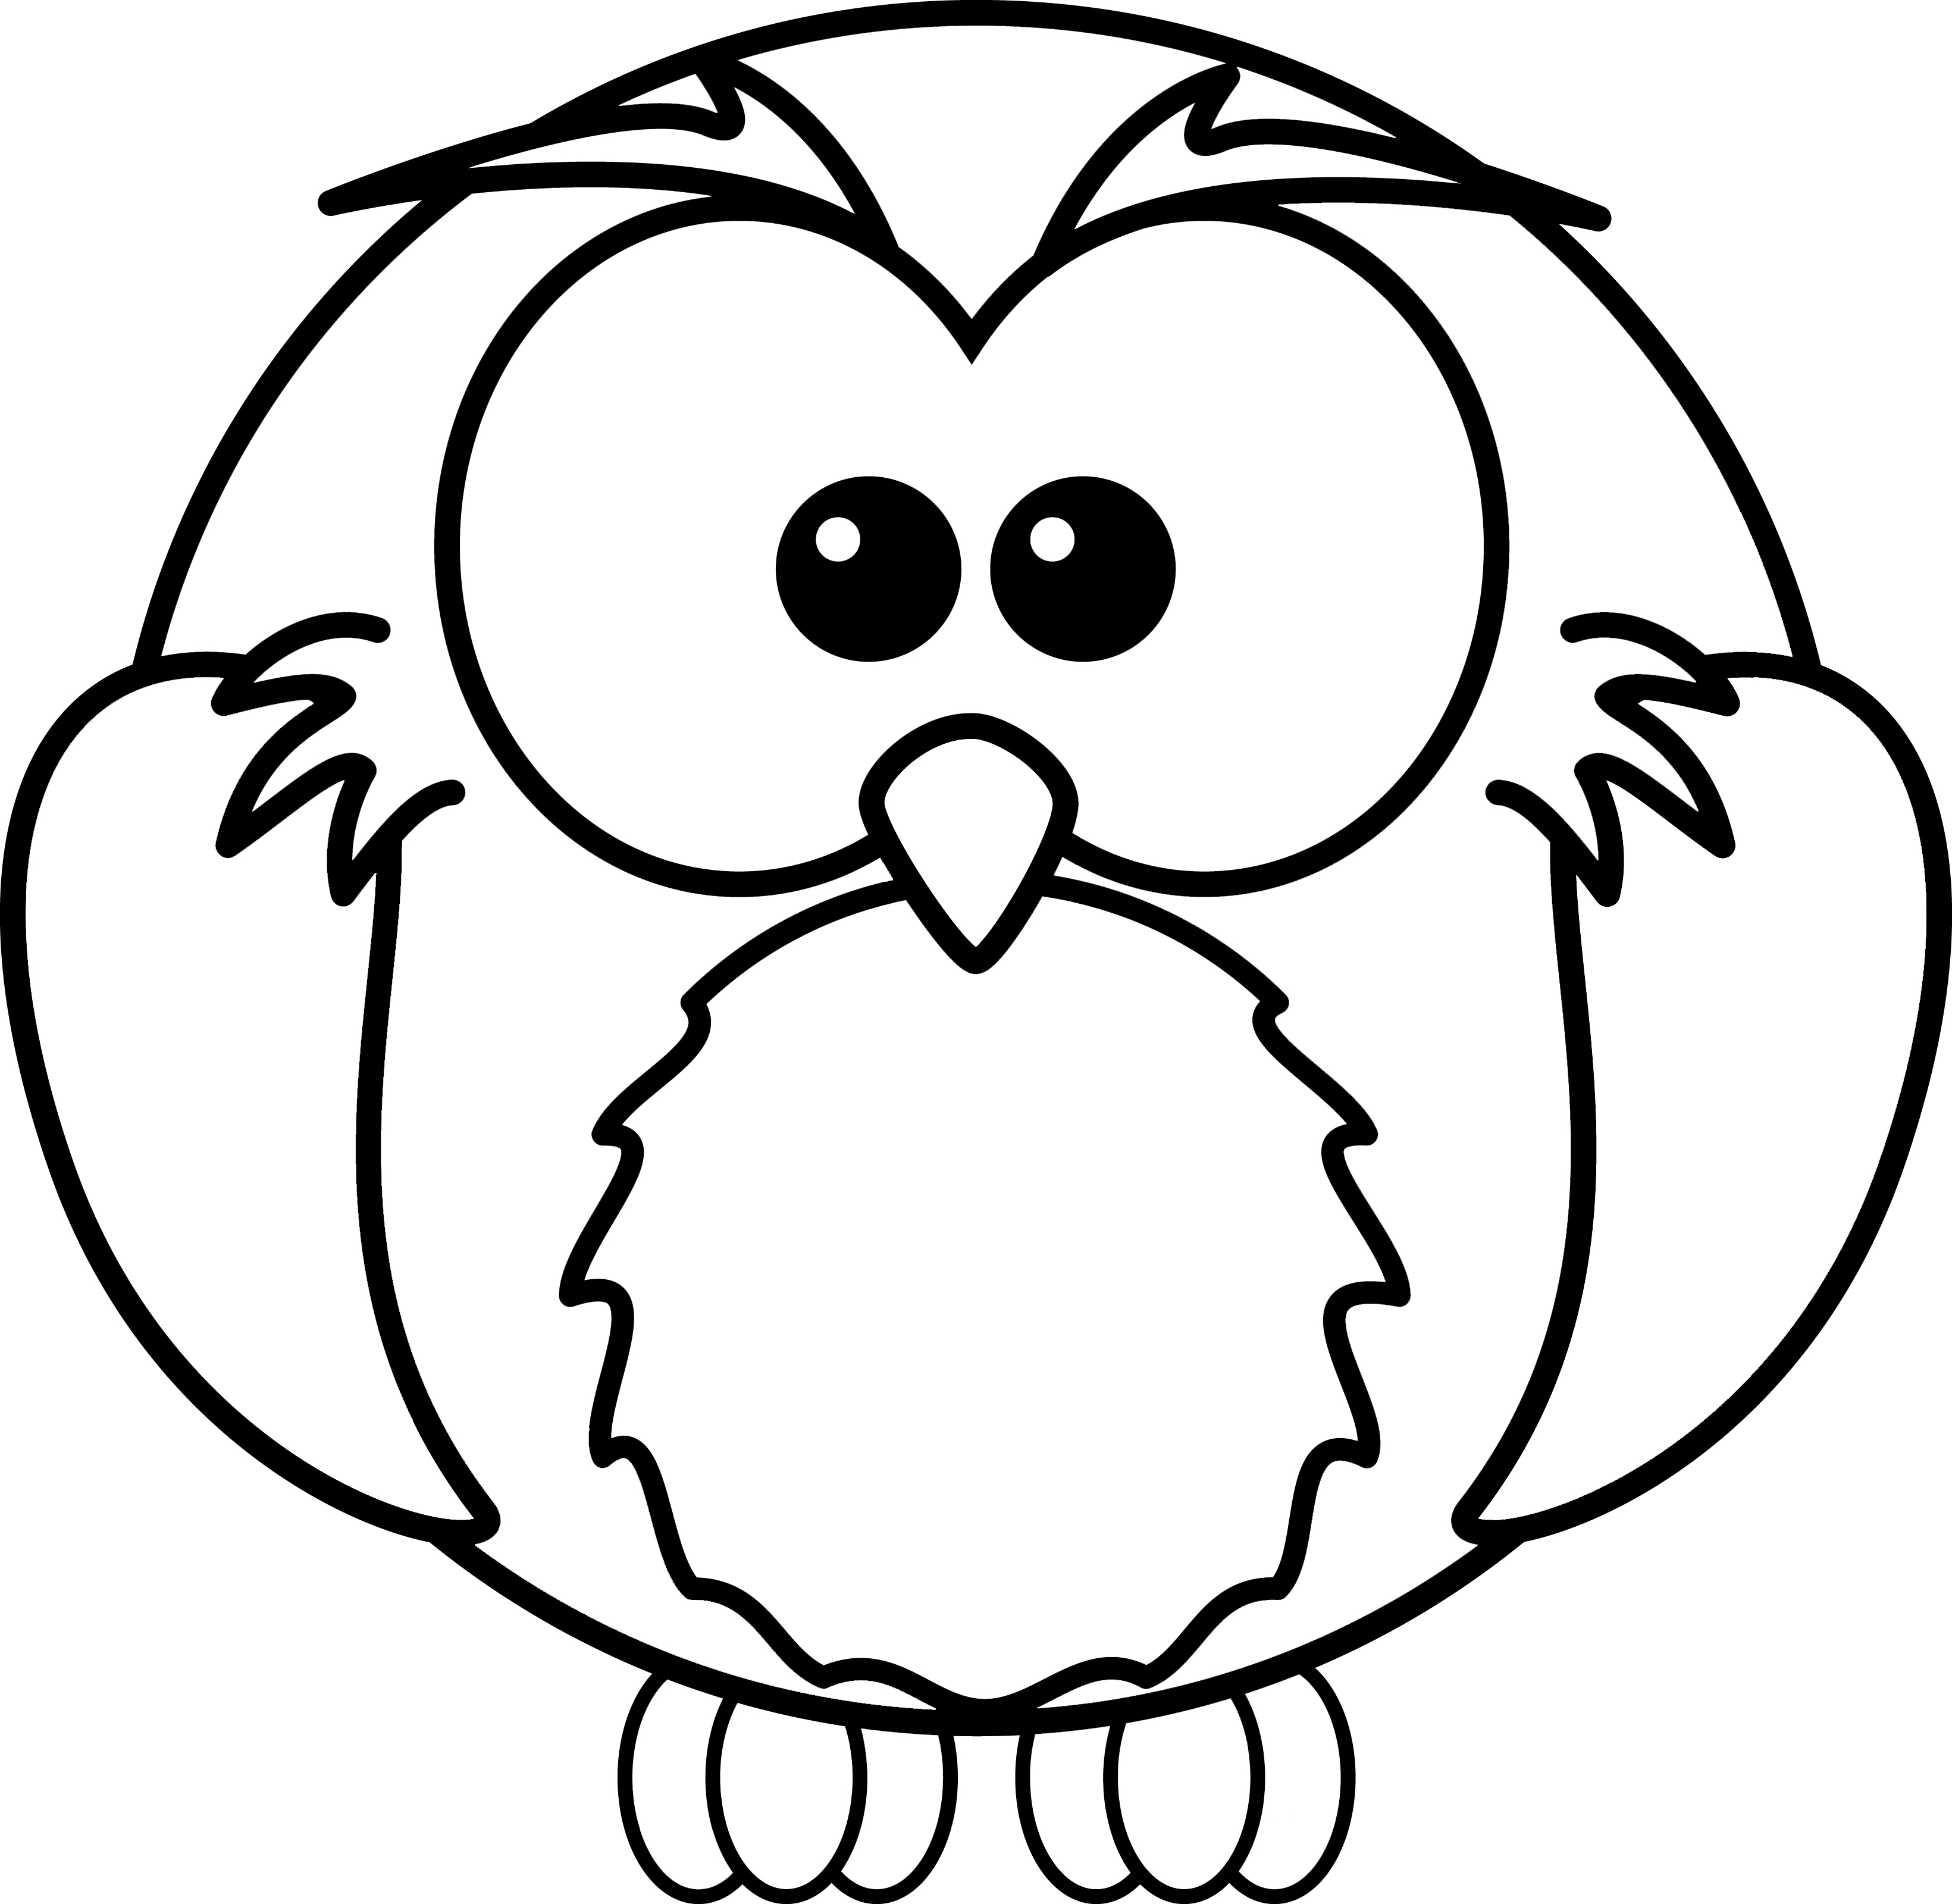 coloring pages cartoons cartoon characters coloring pages easy coloring home cartoons coloring pages